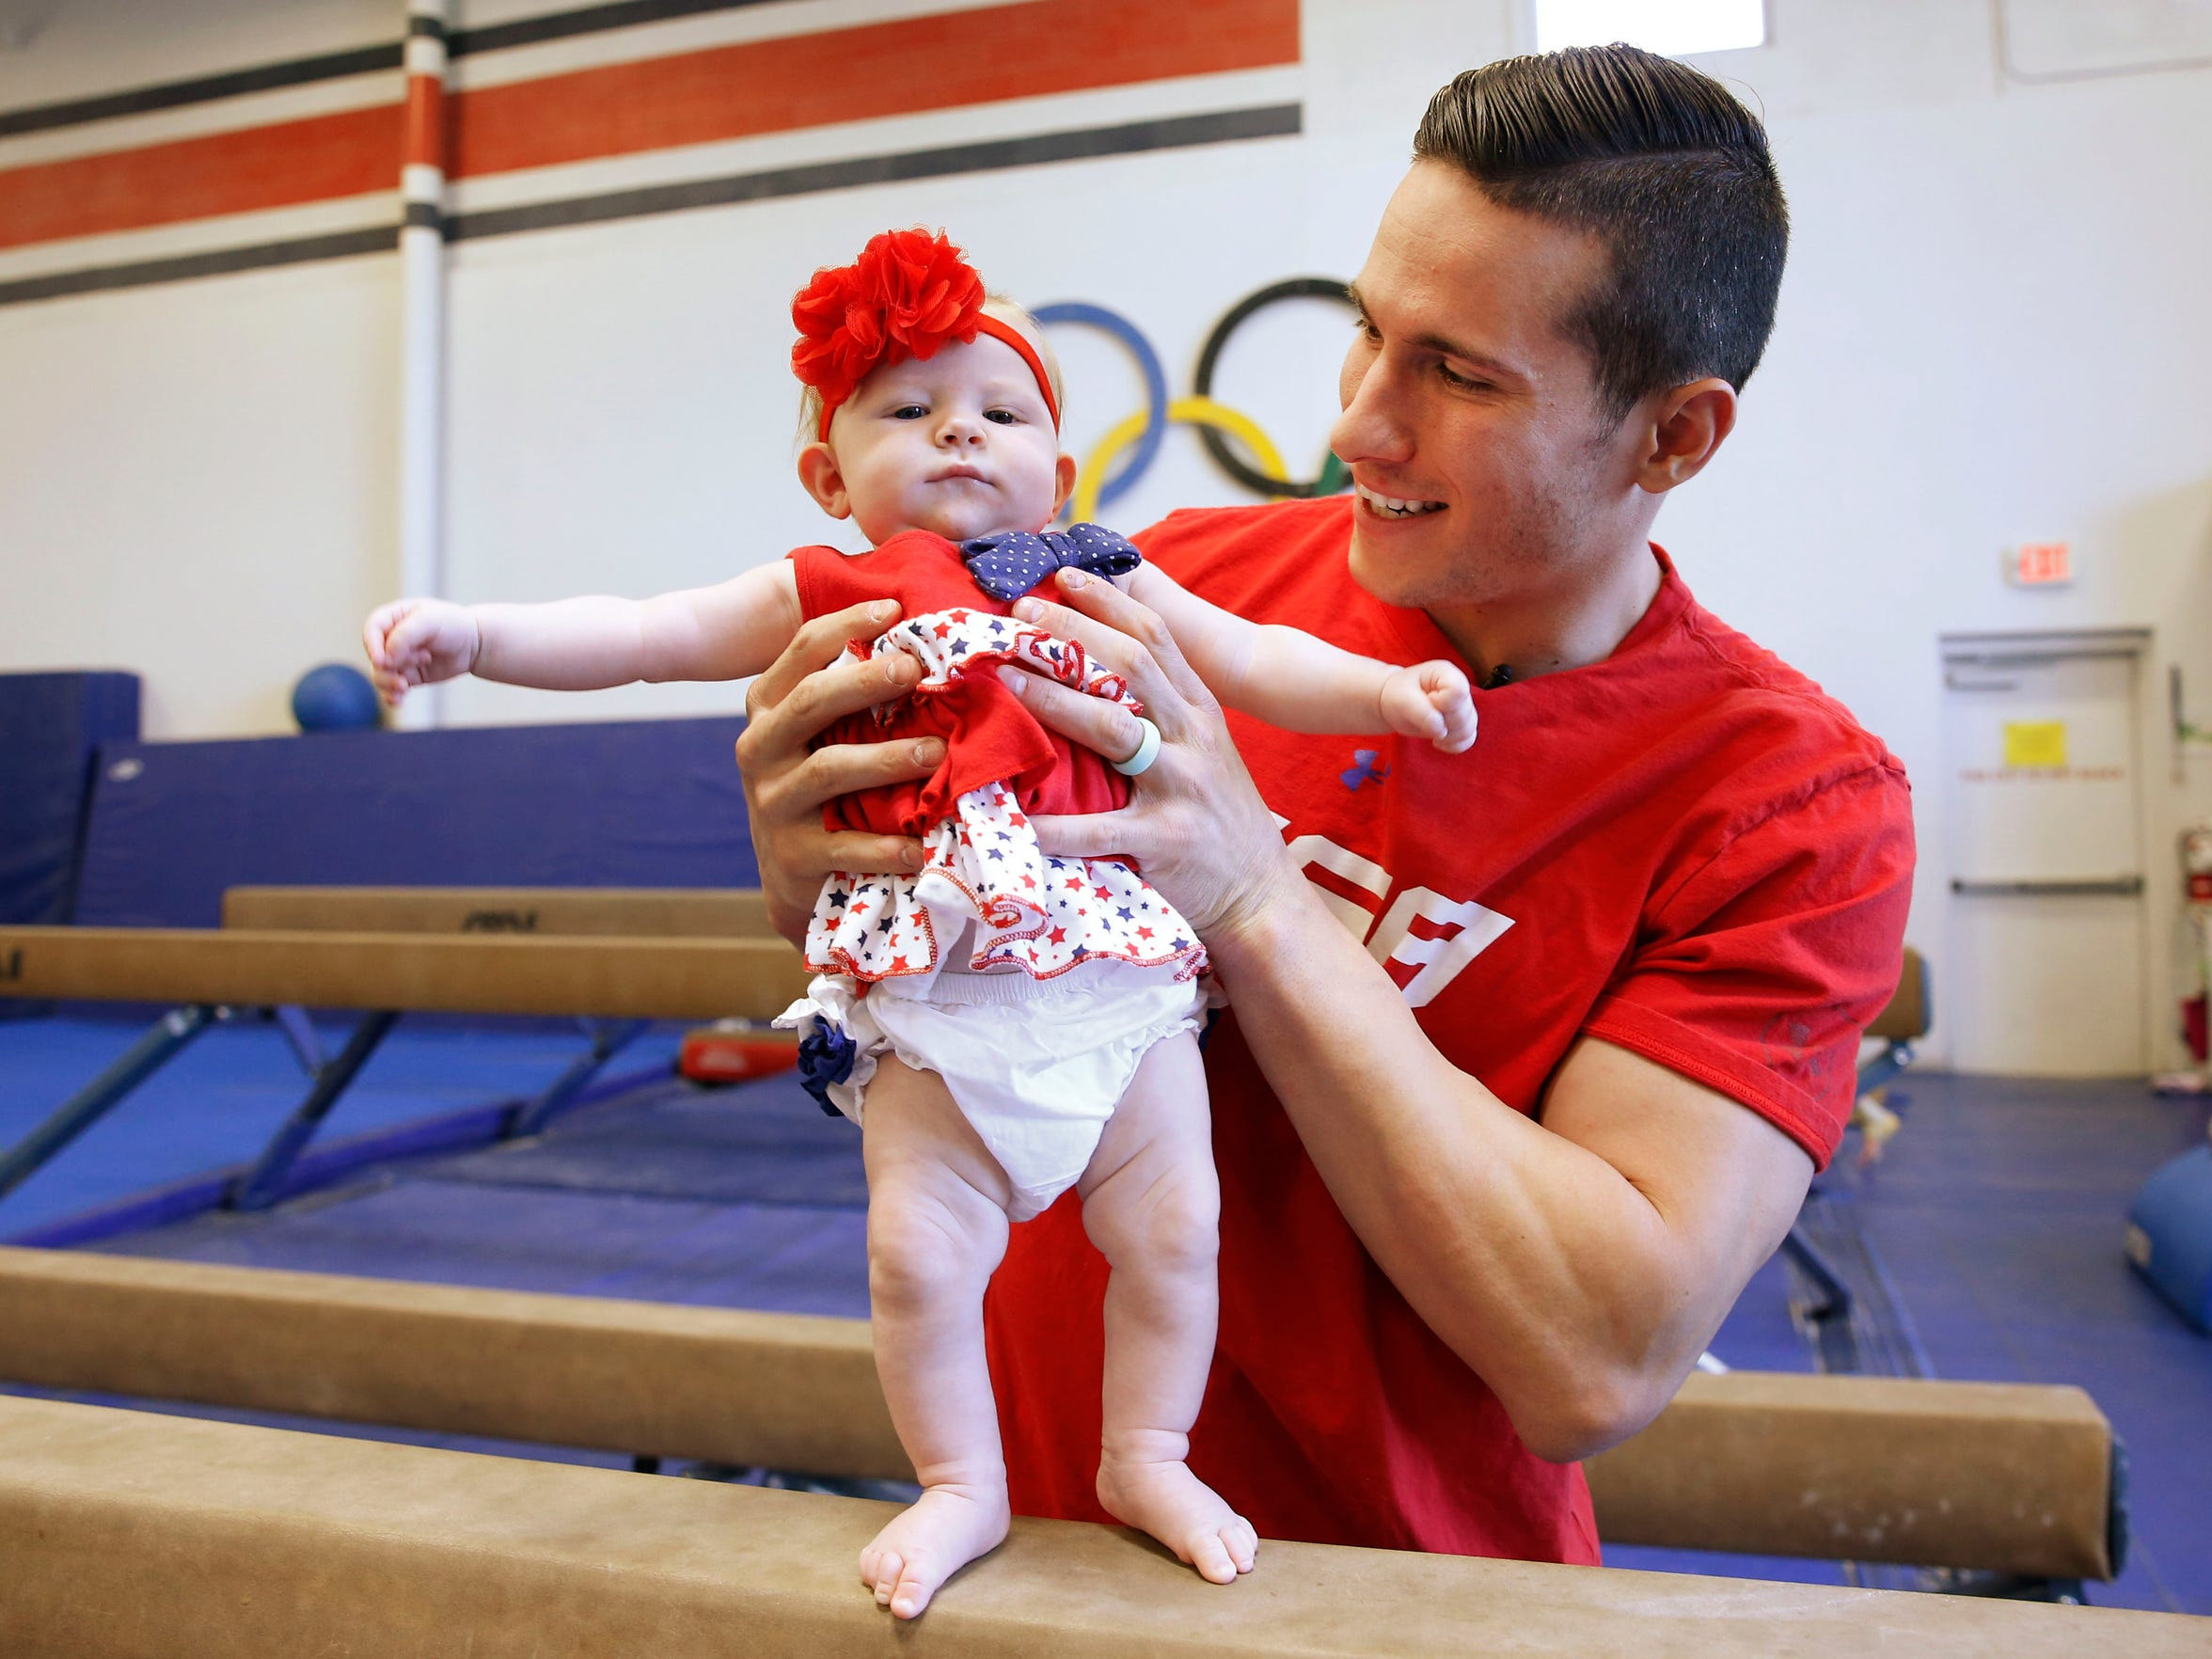 Olympic gymnast Alex Naddour plays with 3-month-old